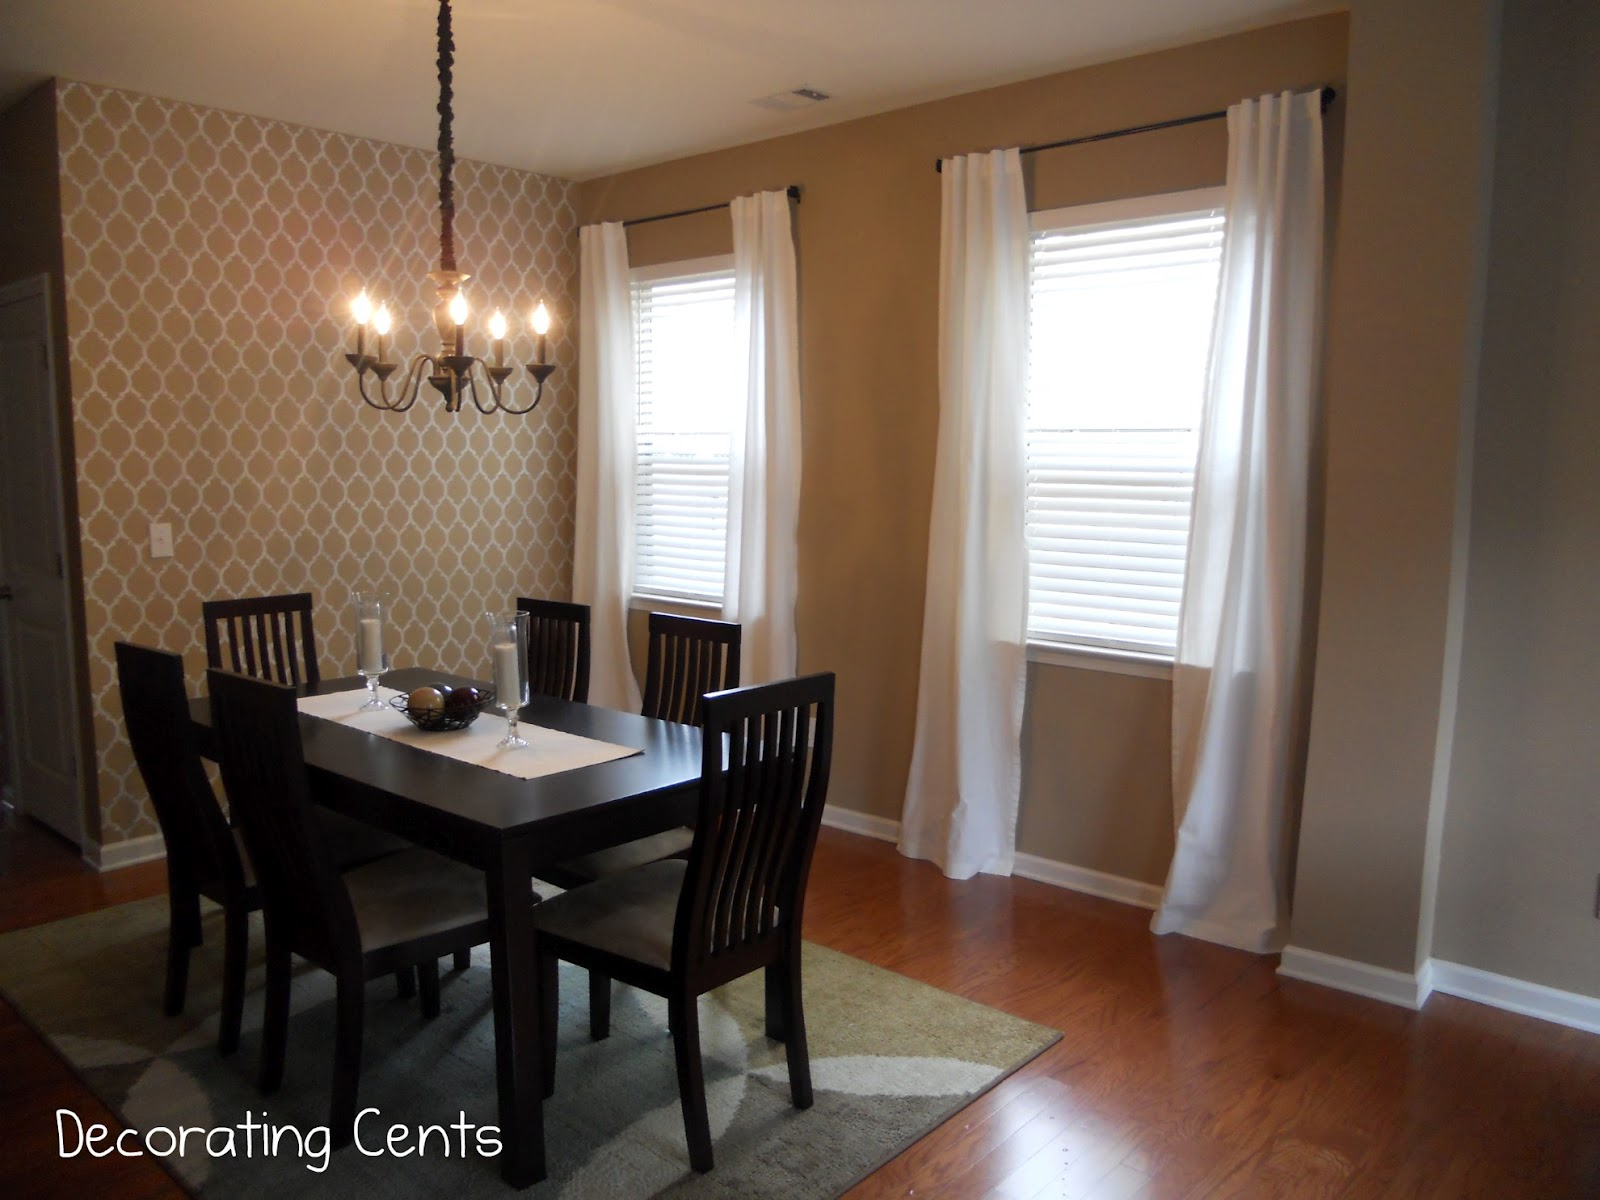 decorating cents dining room curtains